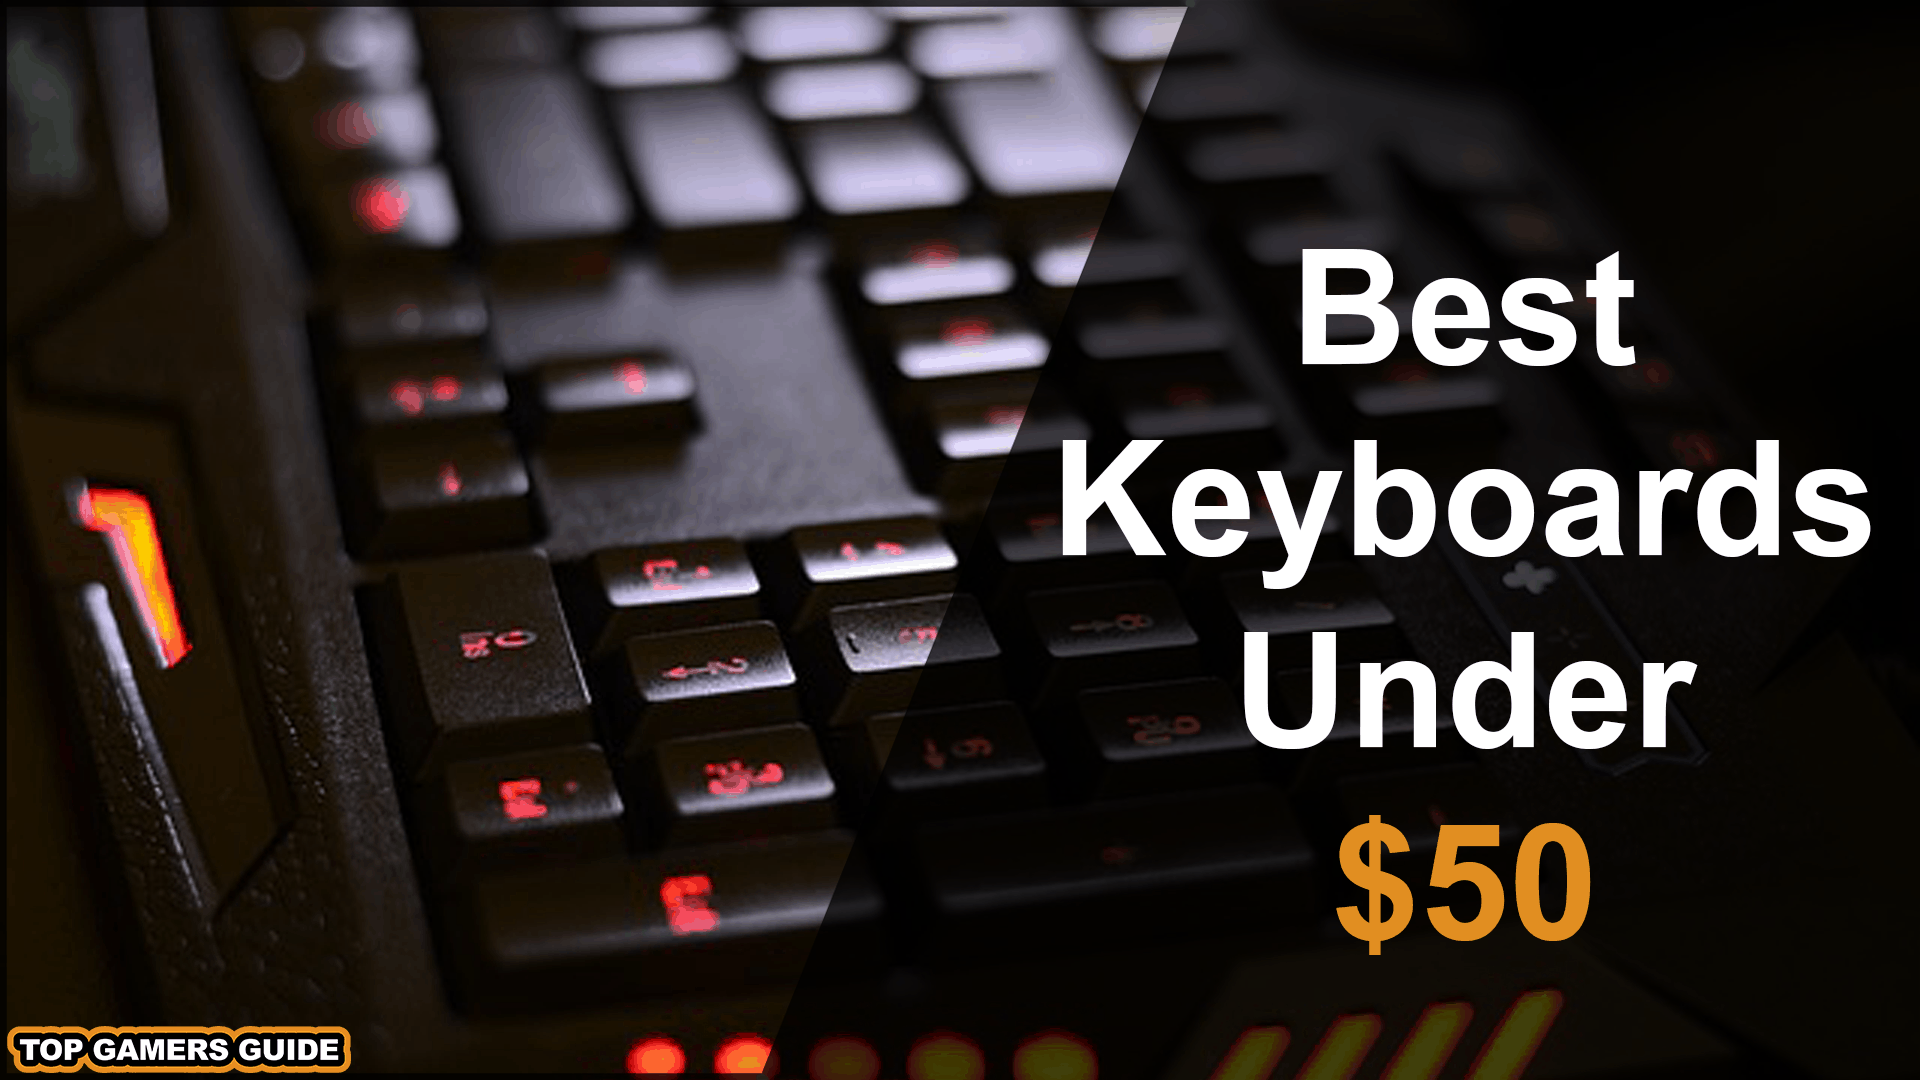 Keyboards under 50 dollar